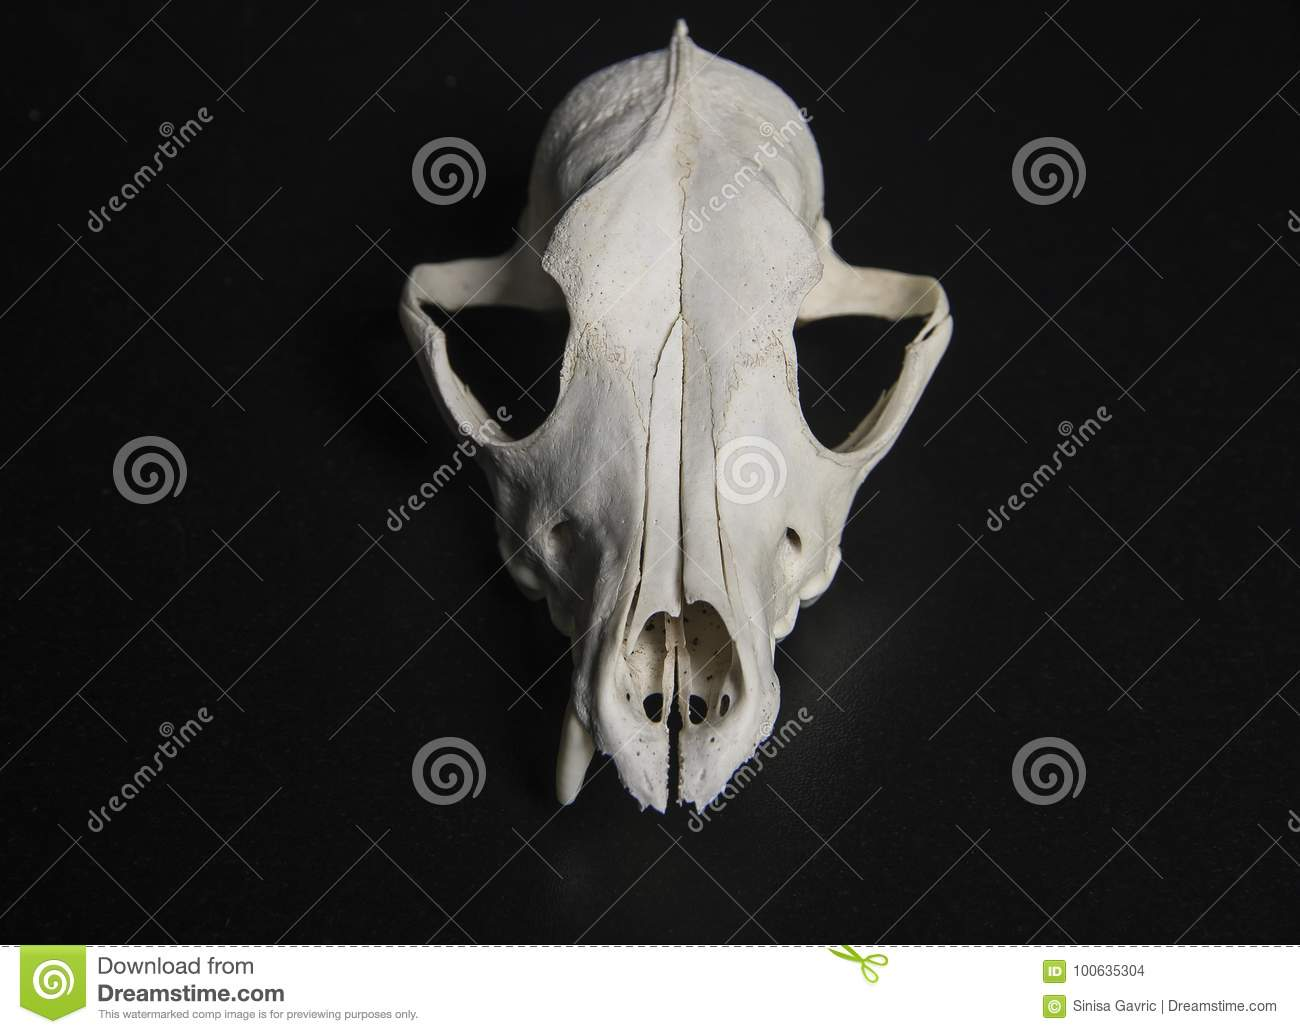 Animal Skull stock photo. Image of time, structure, anatomy - 100635304